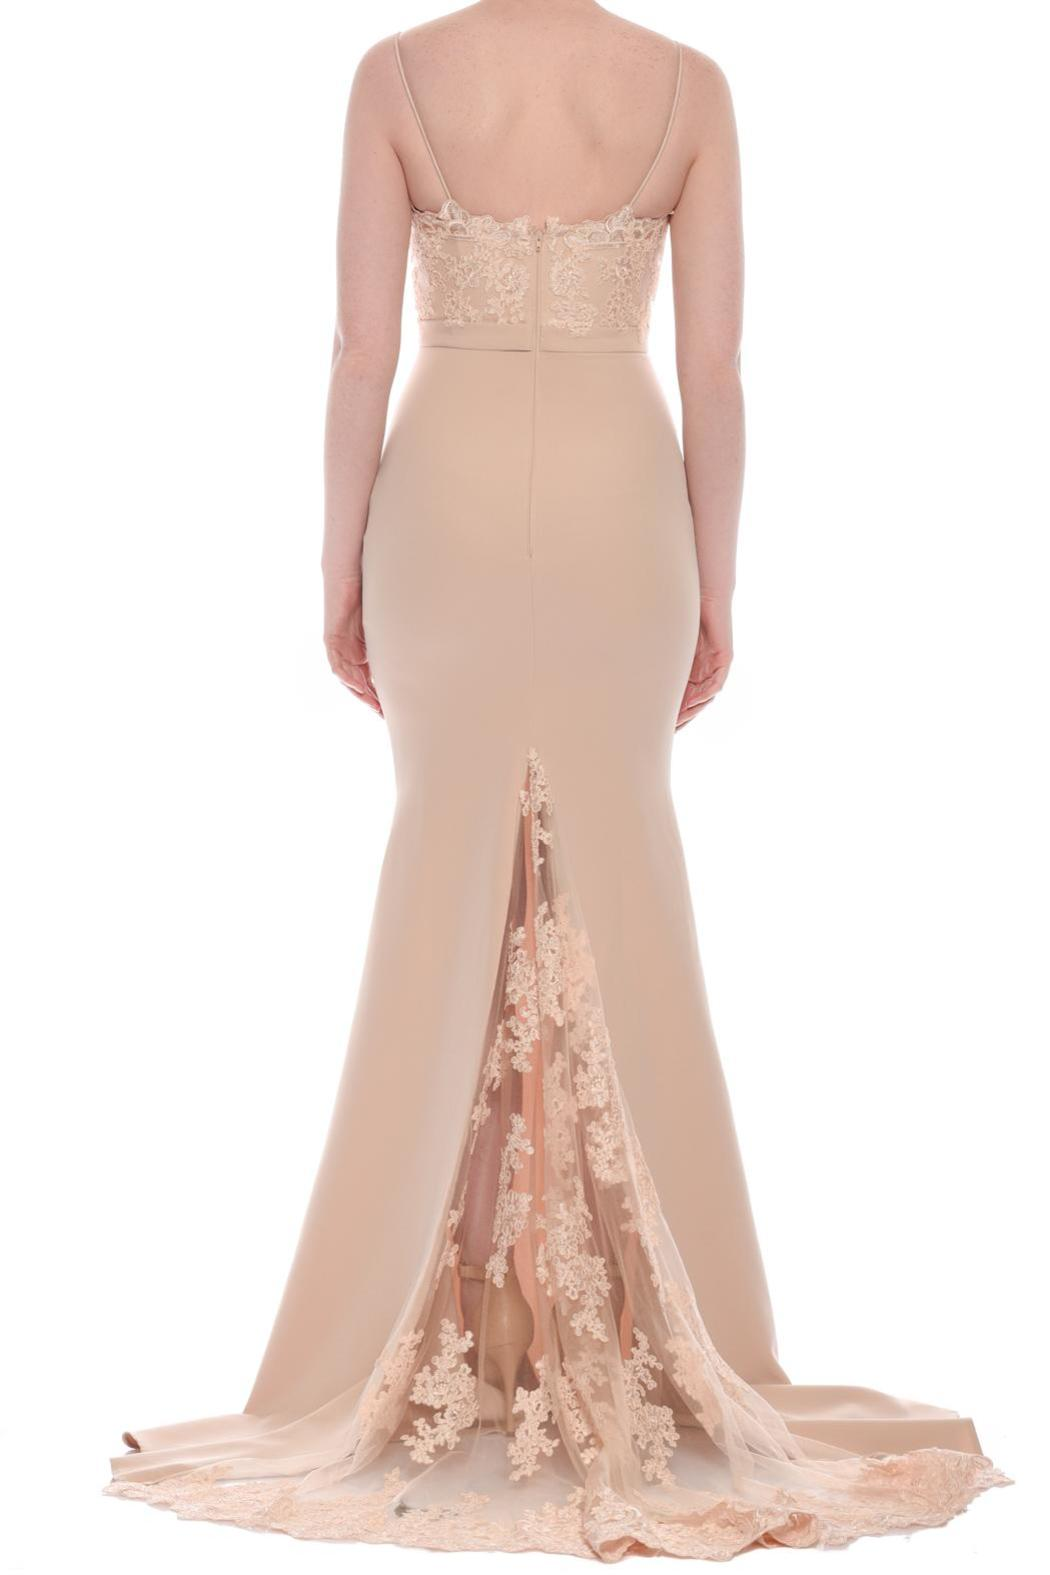 Jadore Glamour Gown from Sydney by Windsor and Lux — Shoptiques